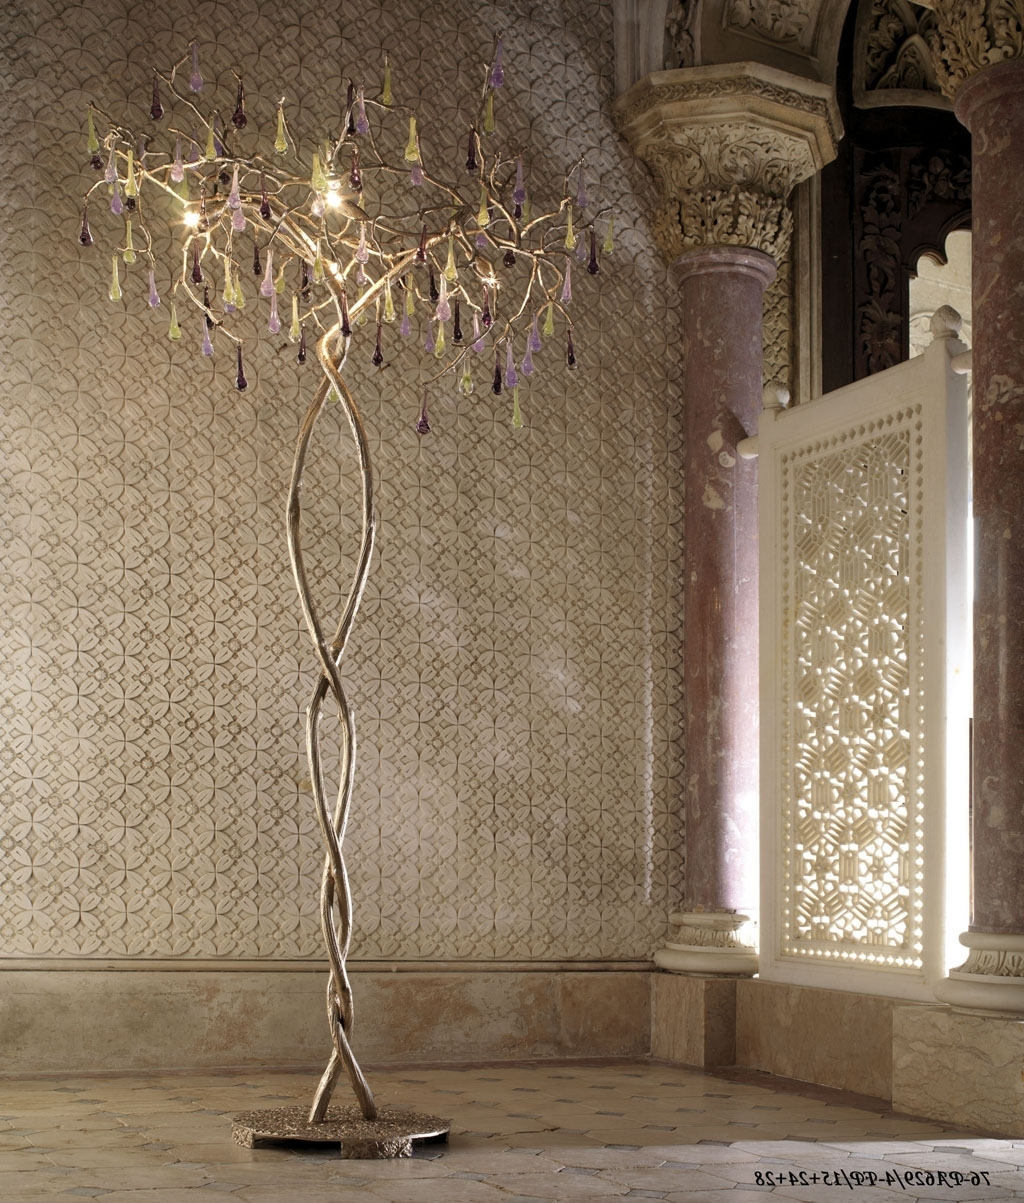 Widely Used Standing Chandelier Floor Lamps In Standing Chandelier Floor Lamp – Pixball (View 15 of 15)